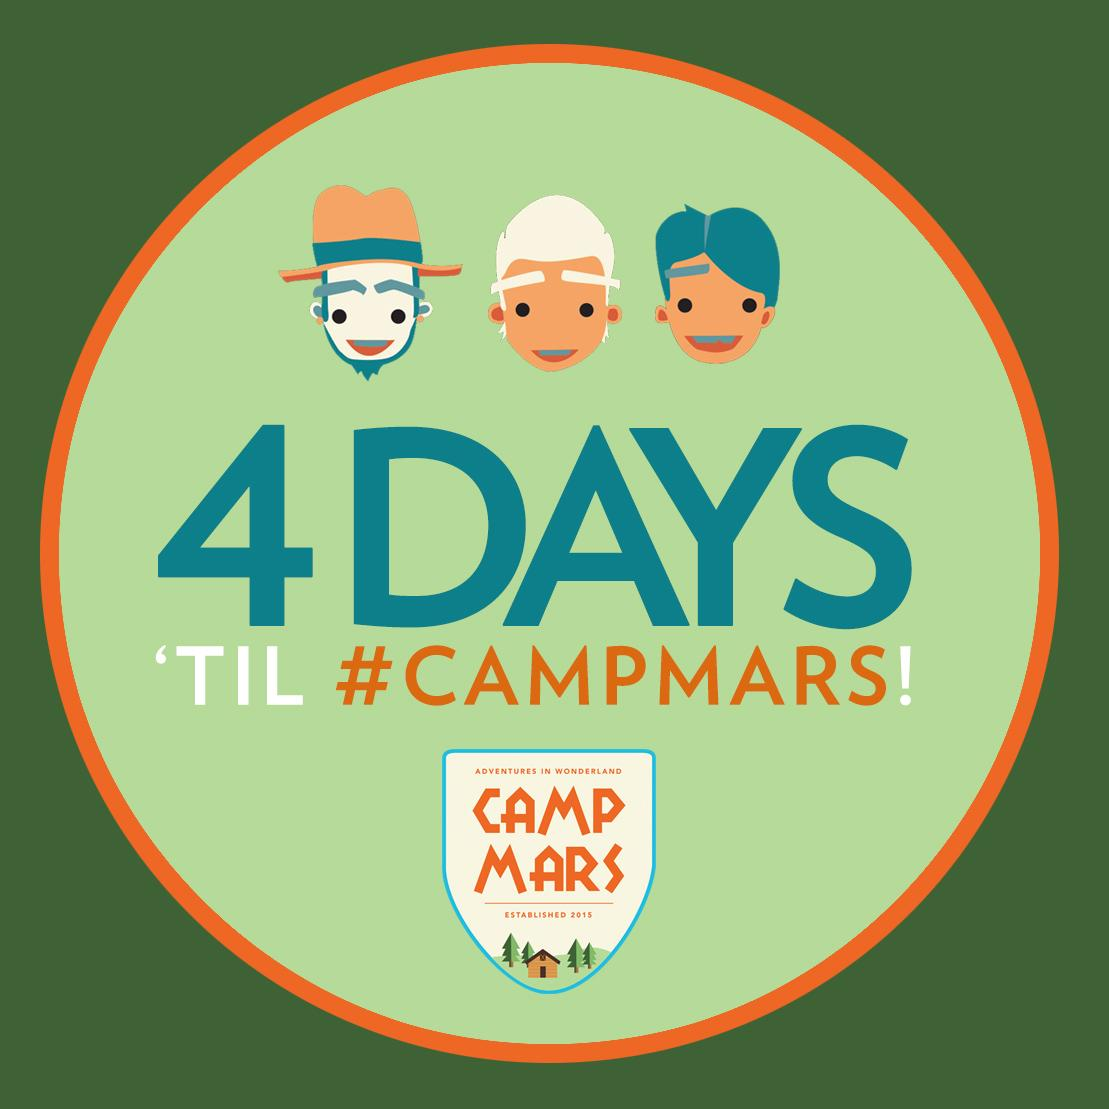 RT @30SECONDSTOMARS: 4 DAYS, MALIBU, + lots of fun ahead. You in?  Concert Tix: http://t.co/rgBeGc0YGP #CampMars: http://t.co/oPusNNFAFZ ht…